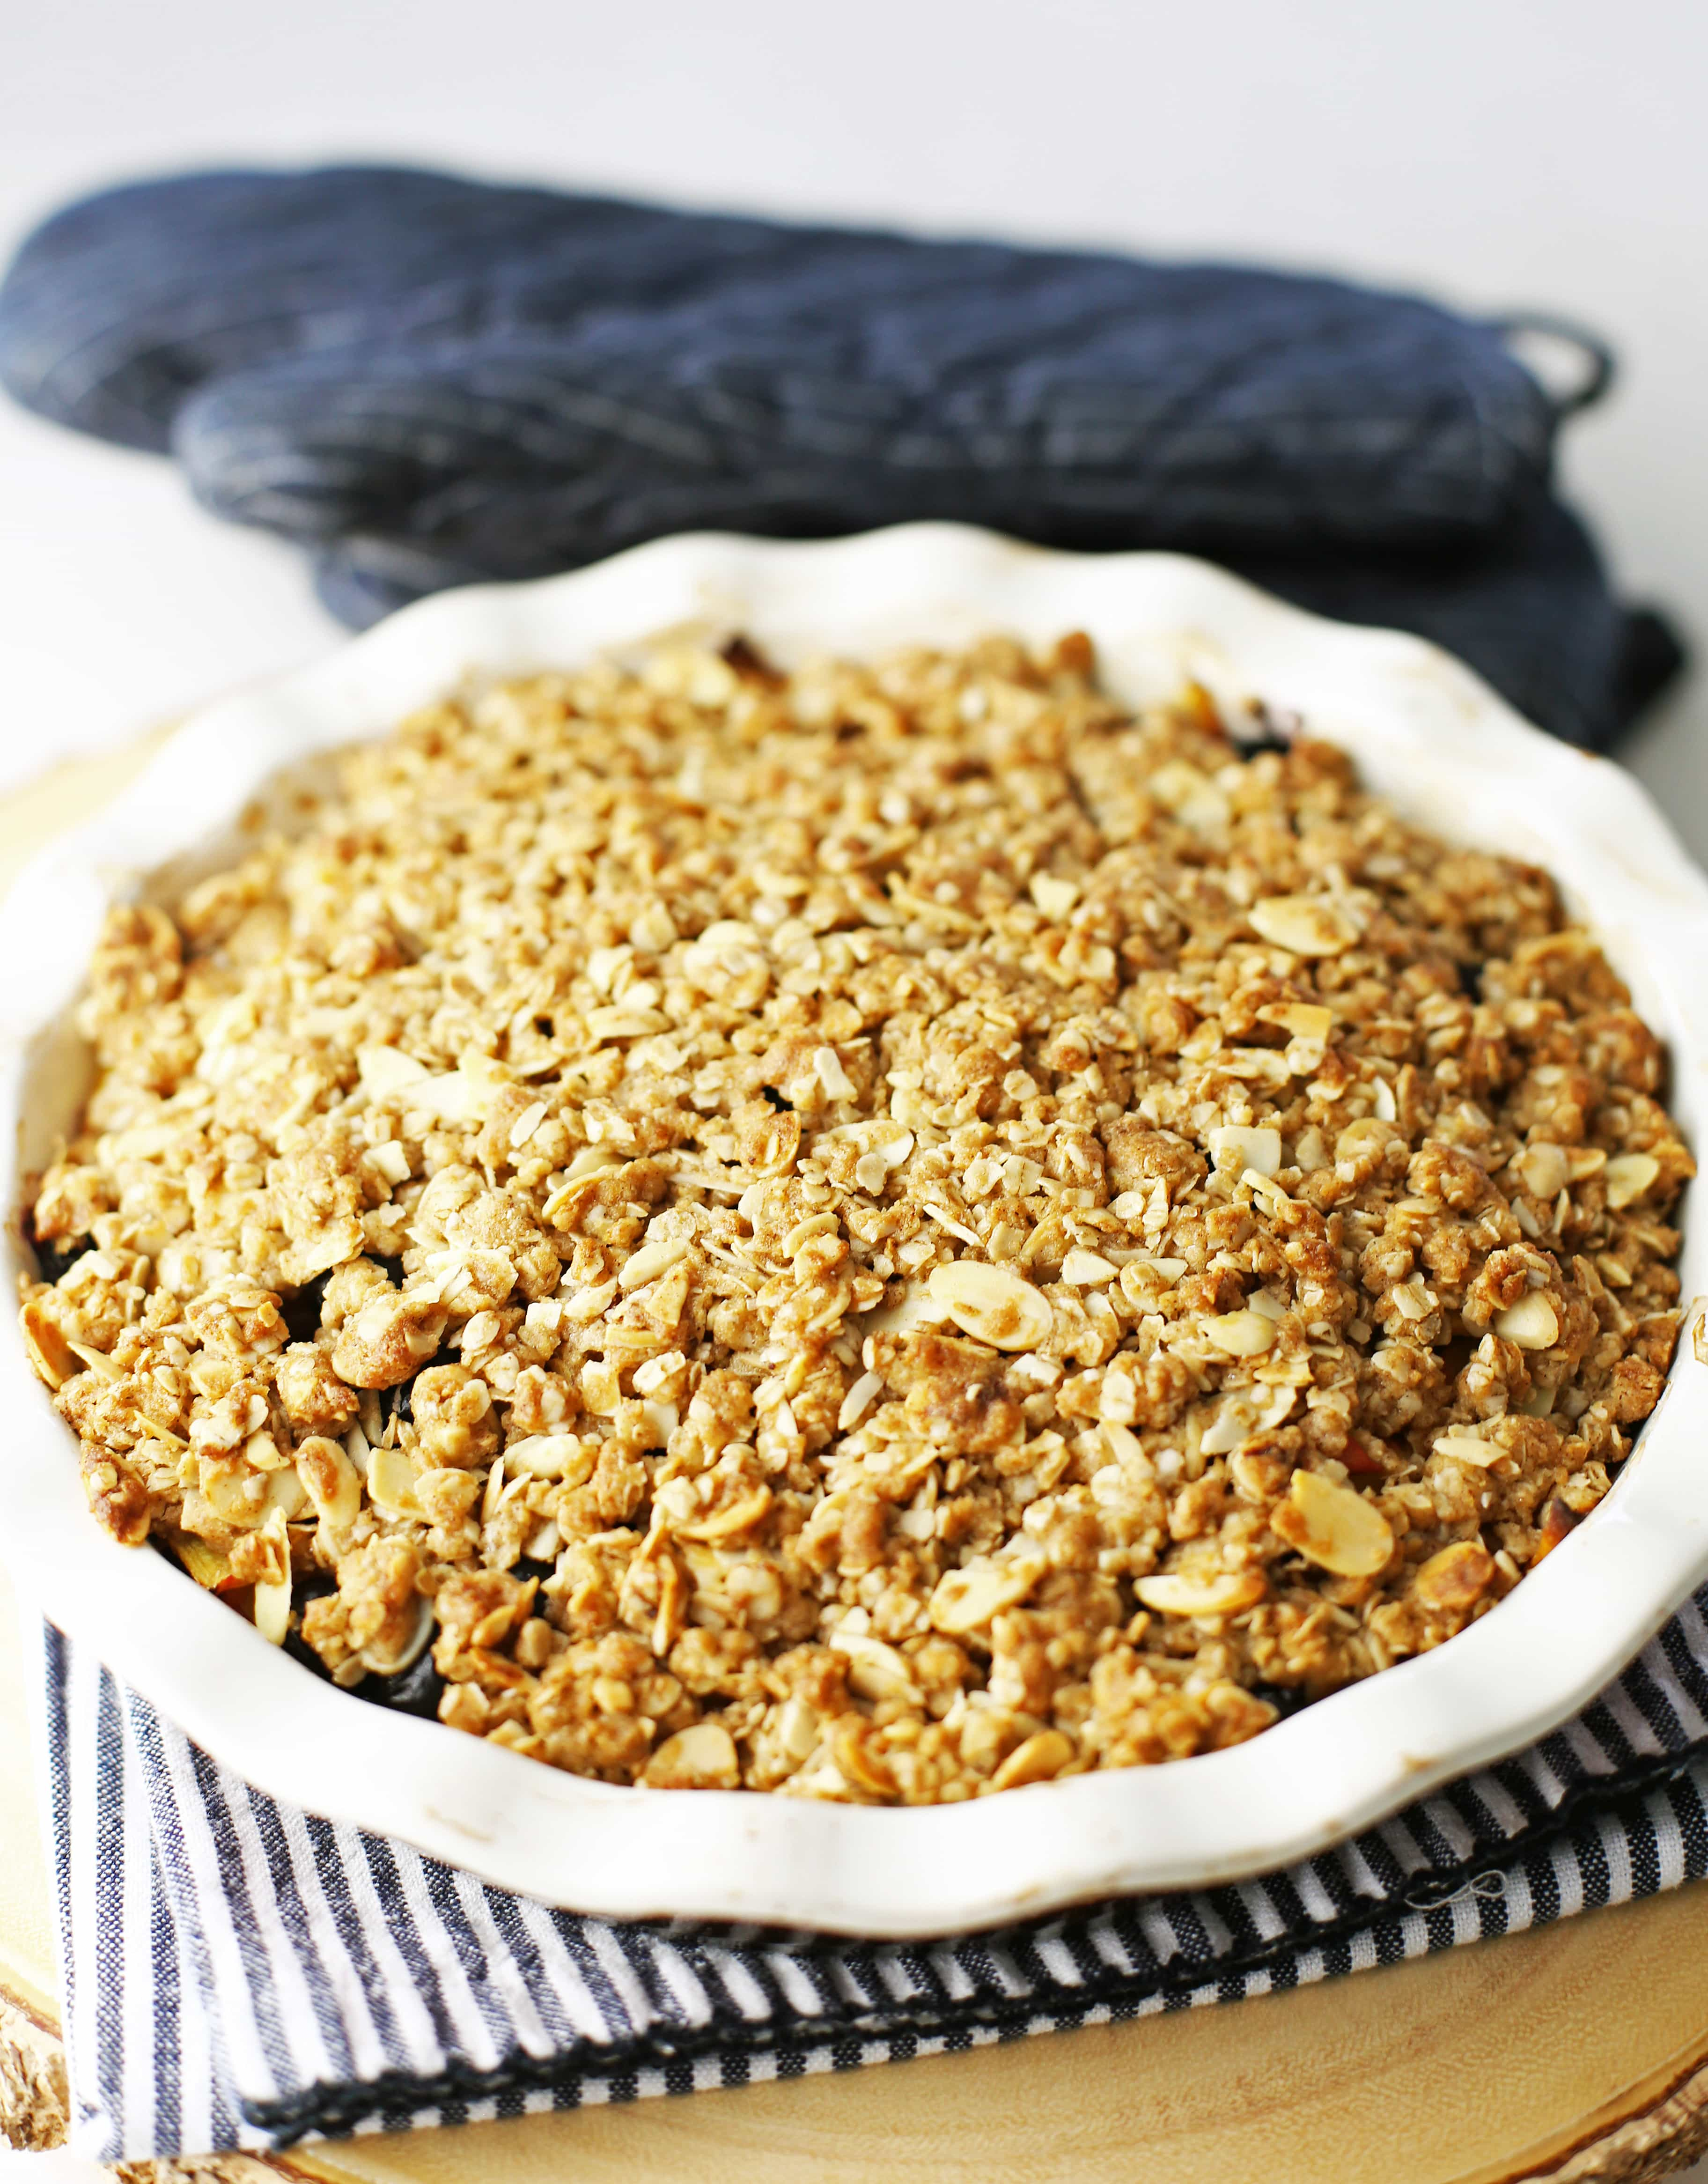 Baked blueberry peach crisp with almond oat topping in a pie dish on top of a white and blue towel.